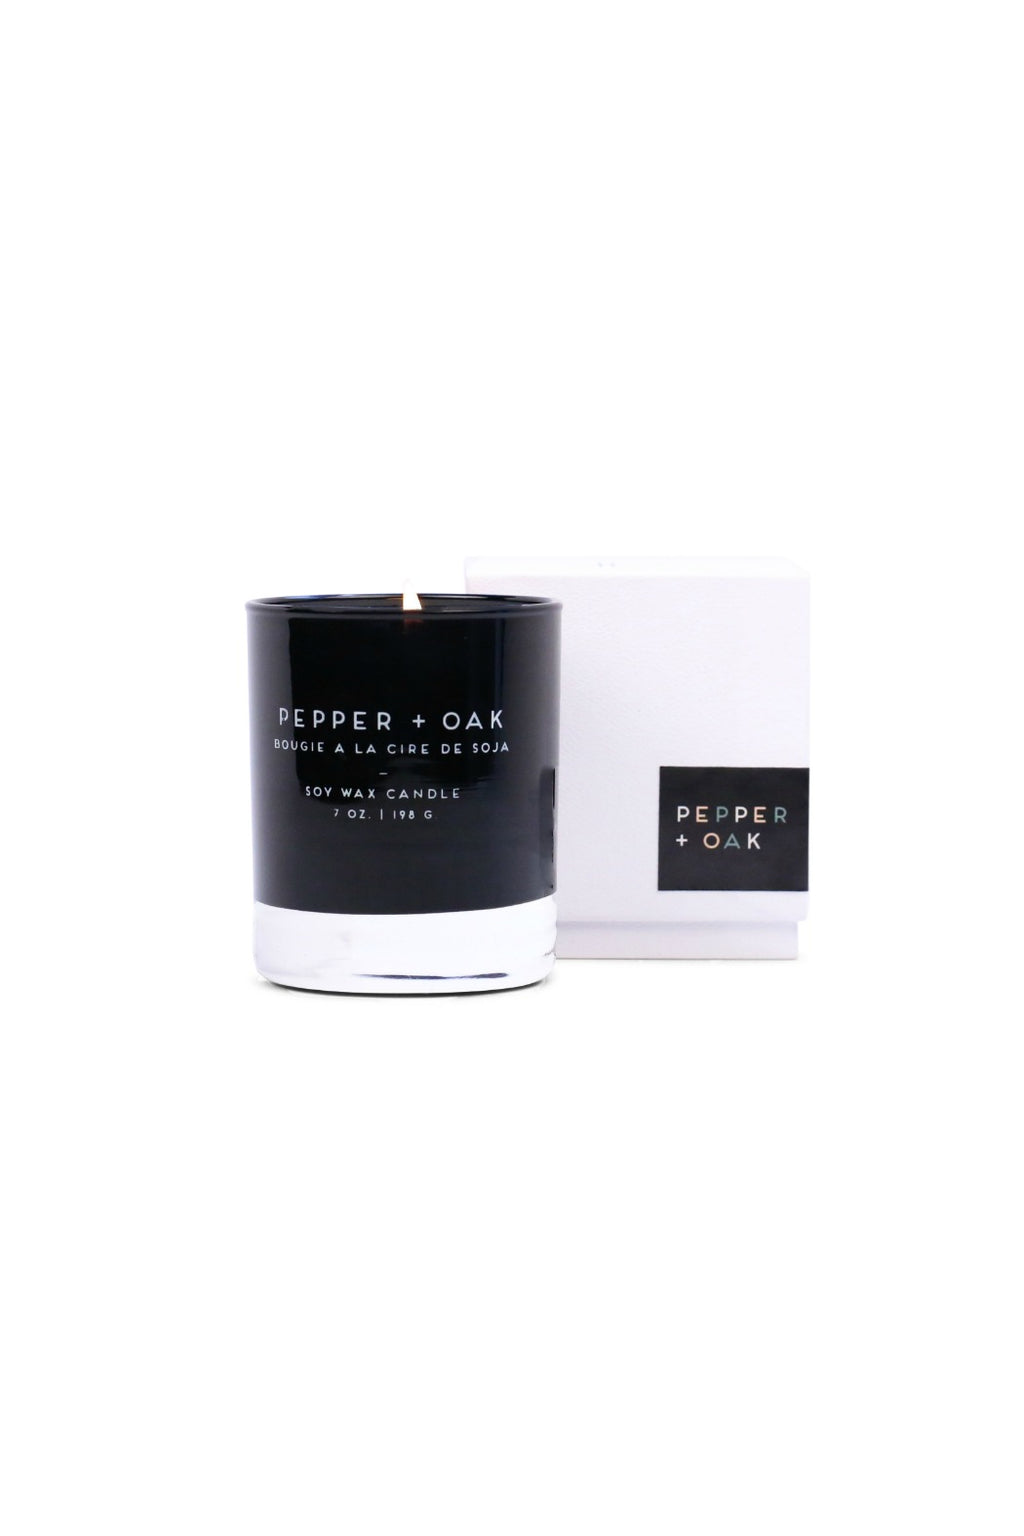 Paddywax Statement Collection Candle in Pepper & Oak